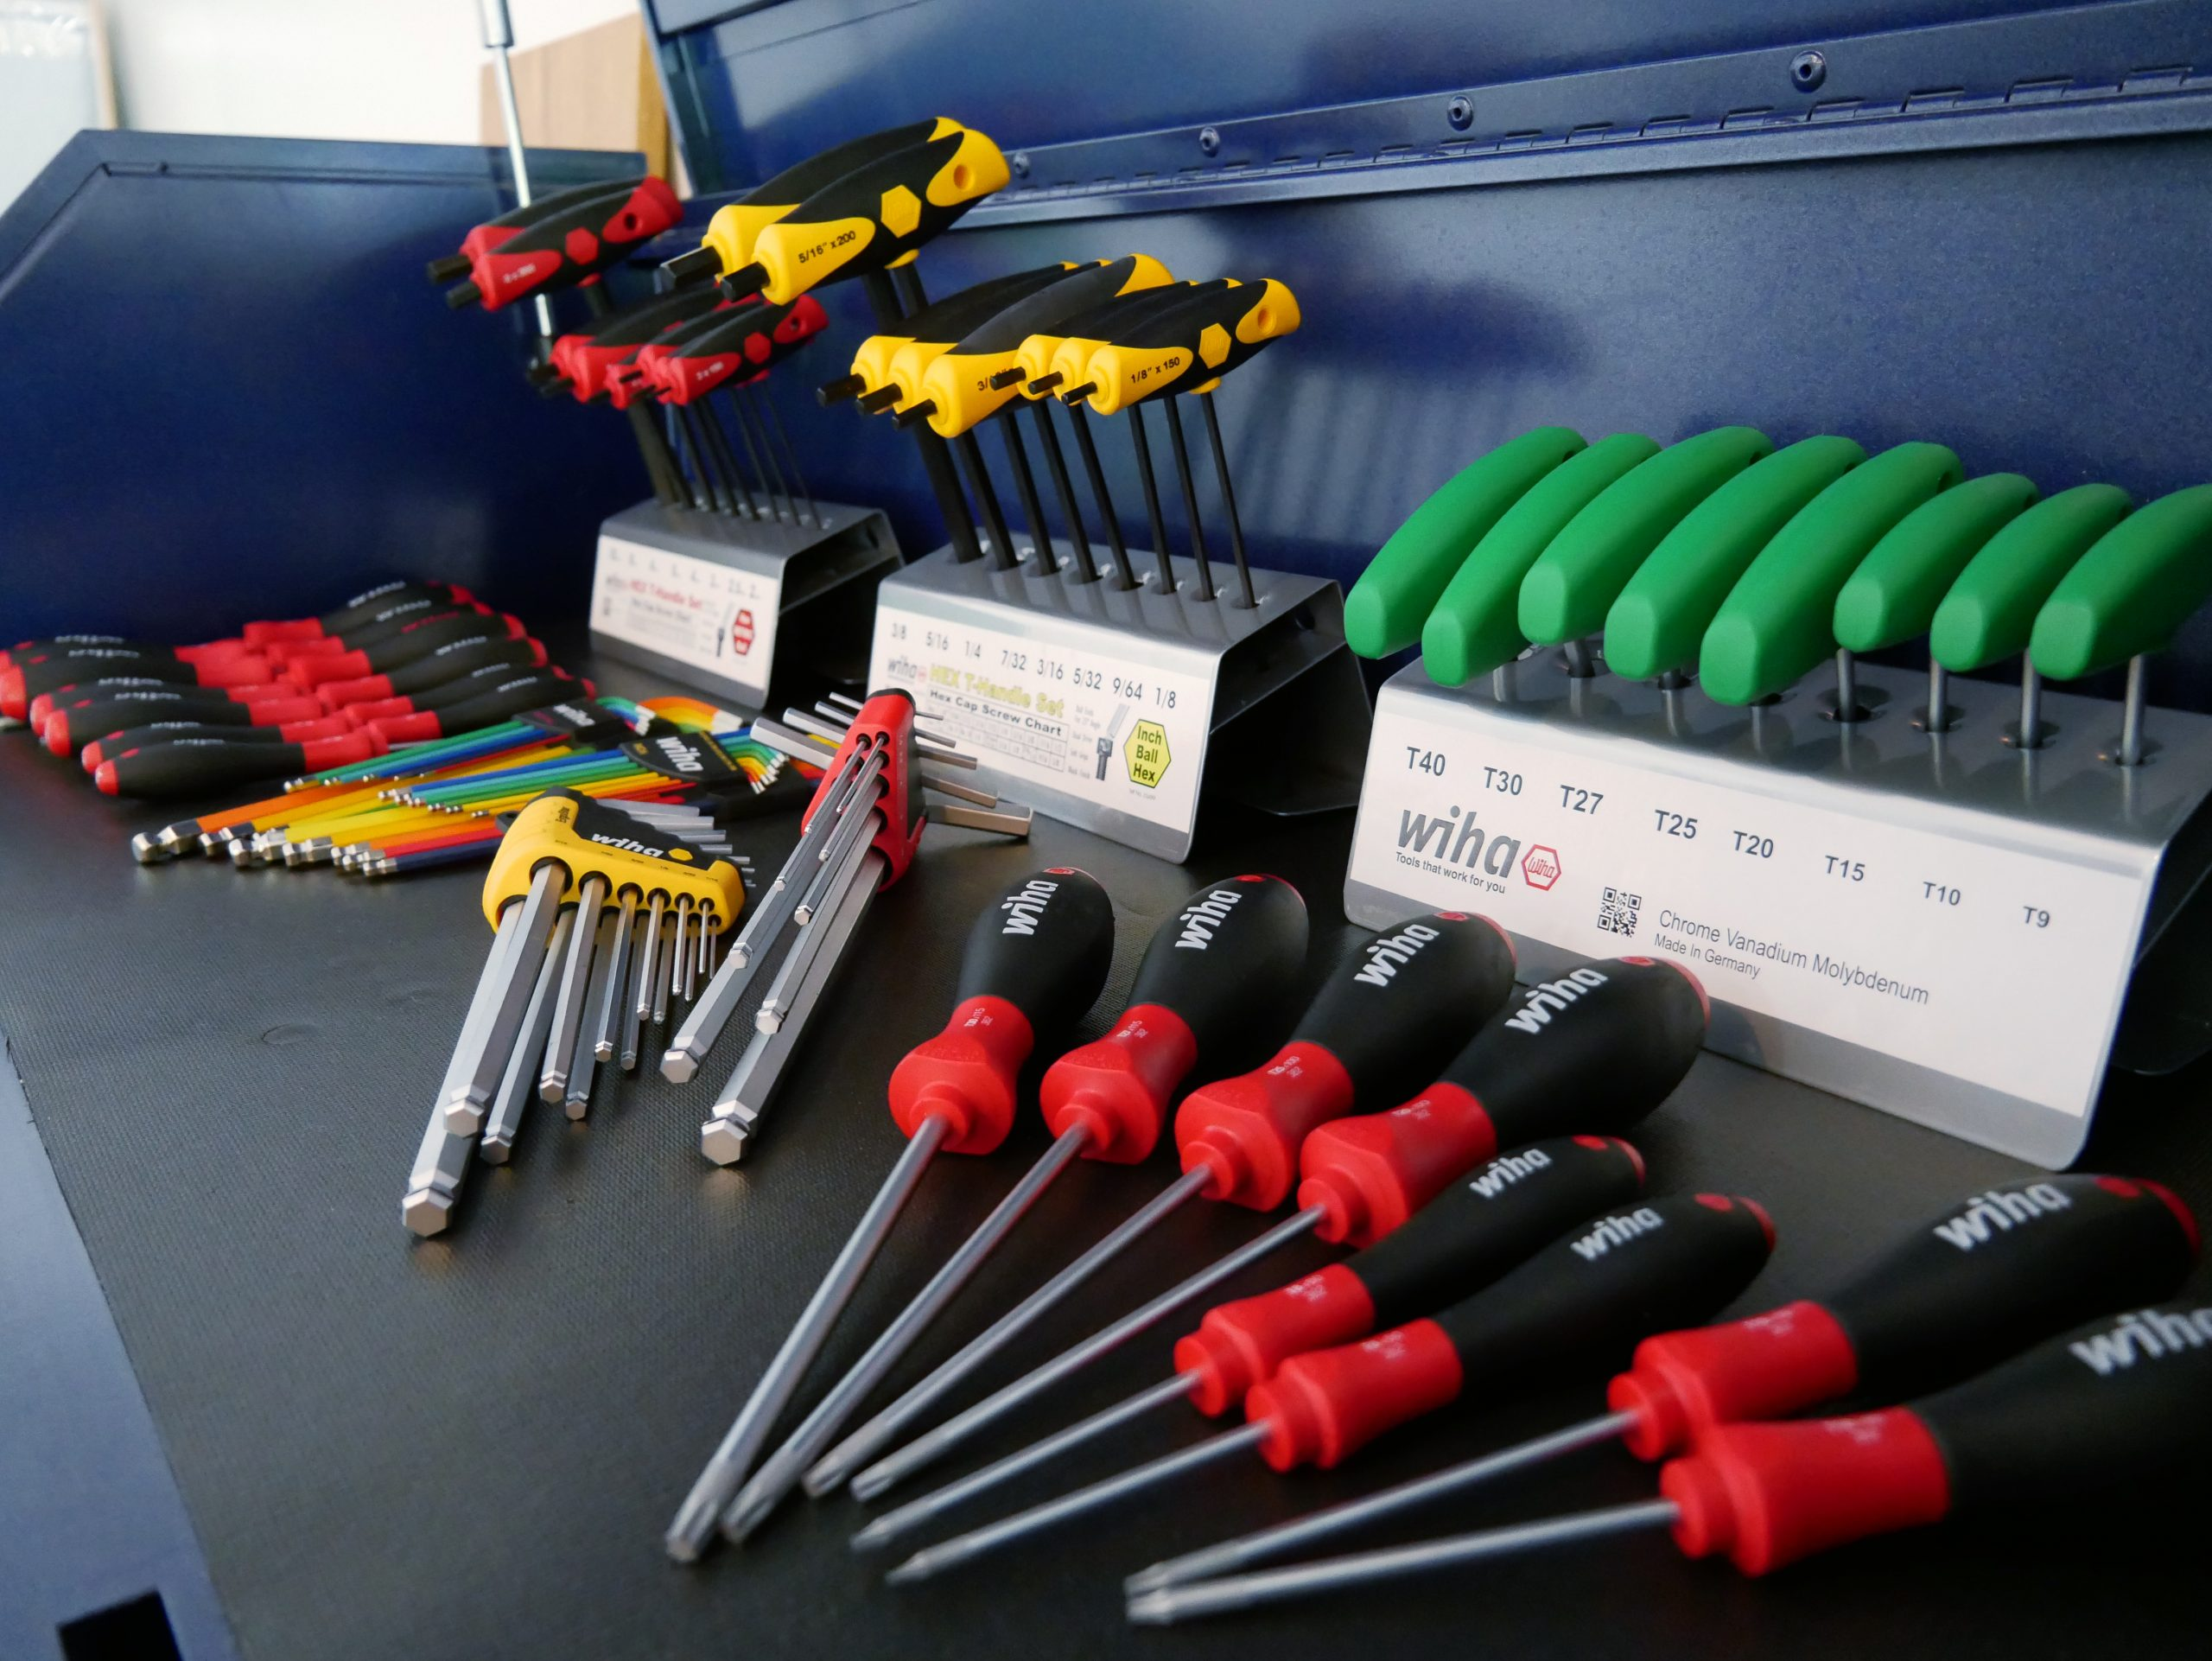 Torx® SoftFinish® Screwdrivers and more from the BIG DEAL